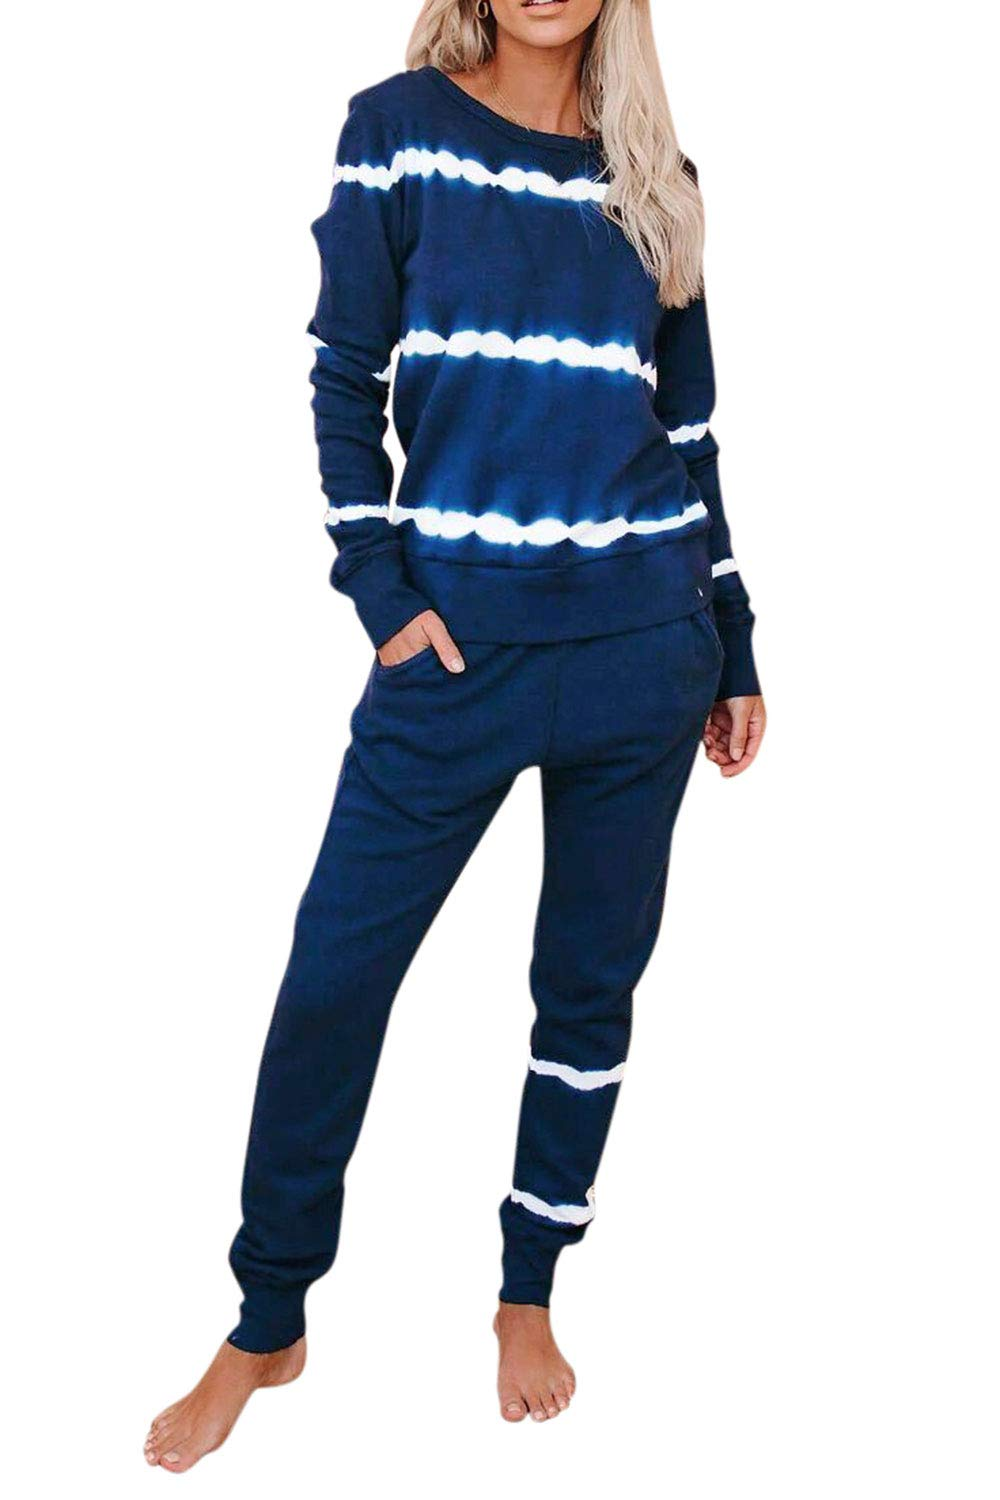 Fixmatti Womens Tie Dye Outfits Long Sleeve Casual Stripes Sweatsuits Set